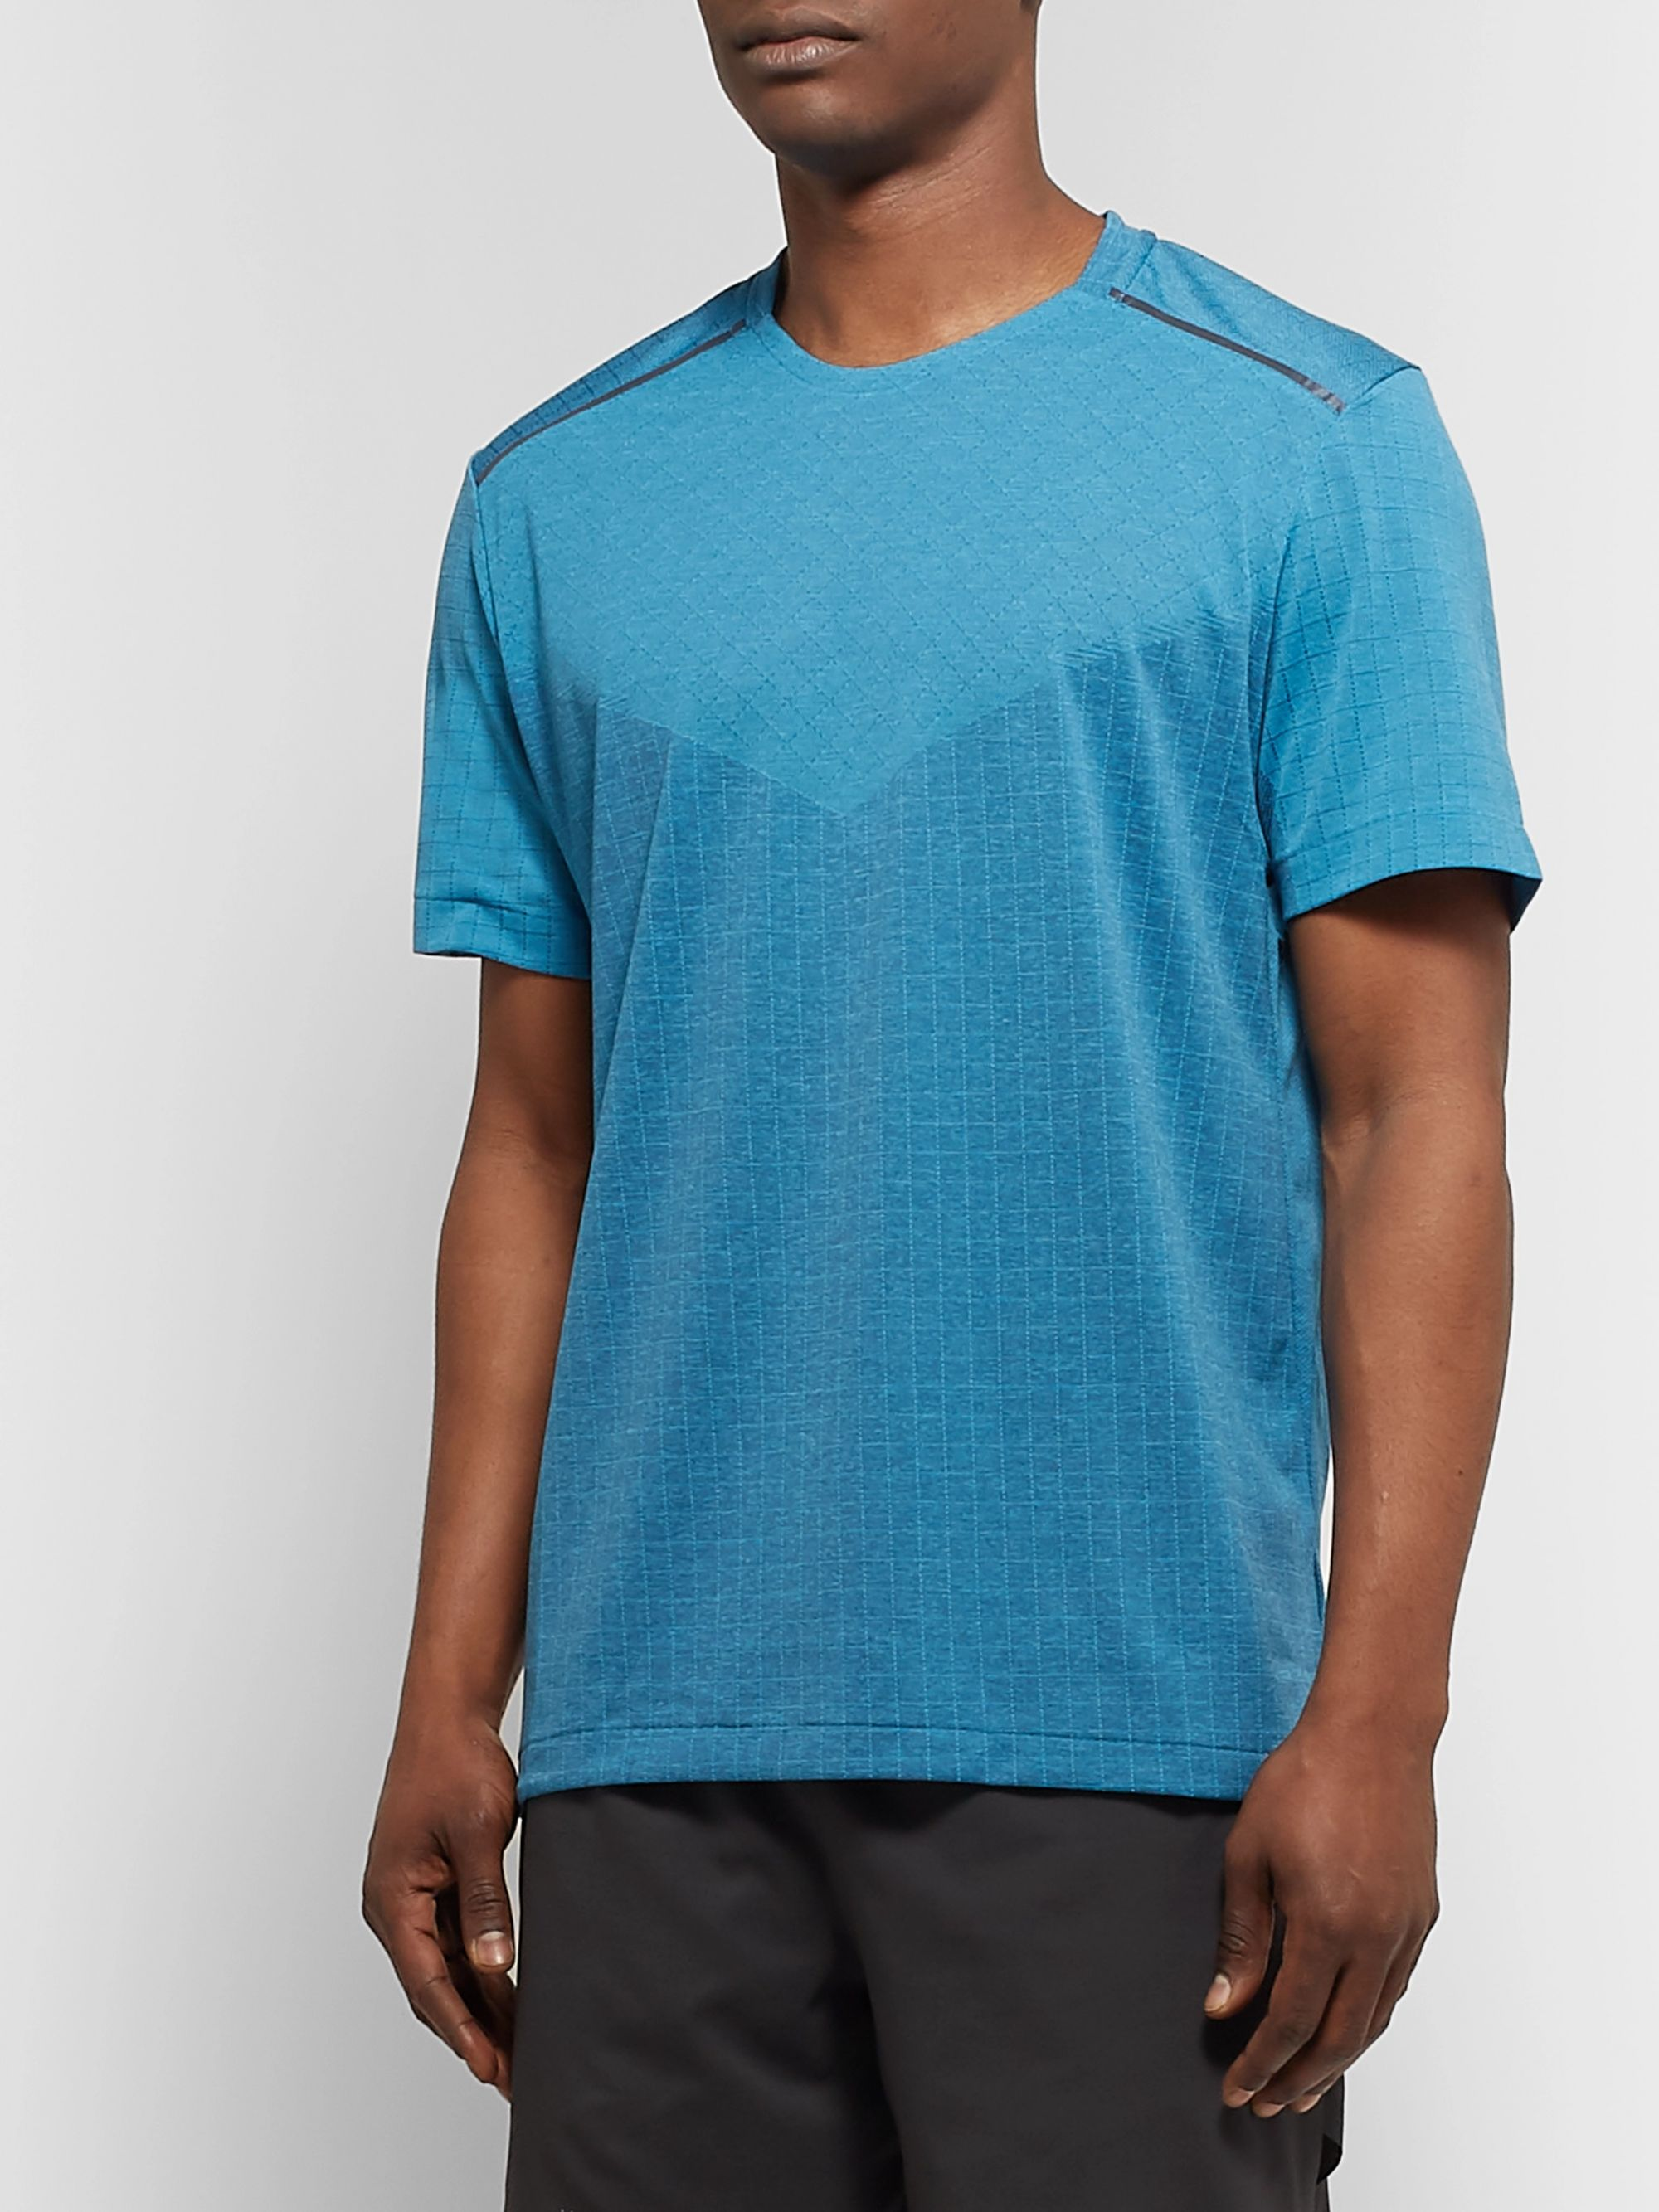 Nike Running Tech Pack Perforated Stretch Jacquard-Knit T-Shirt